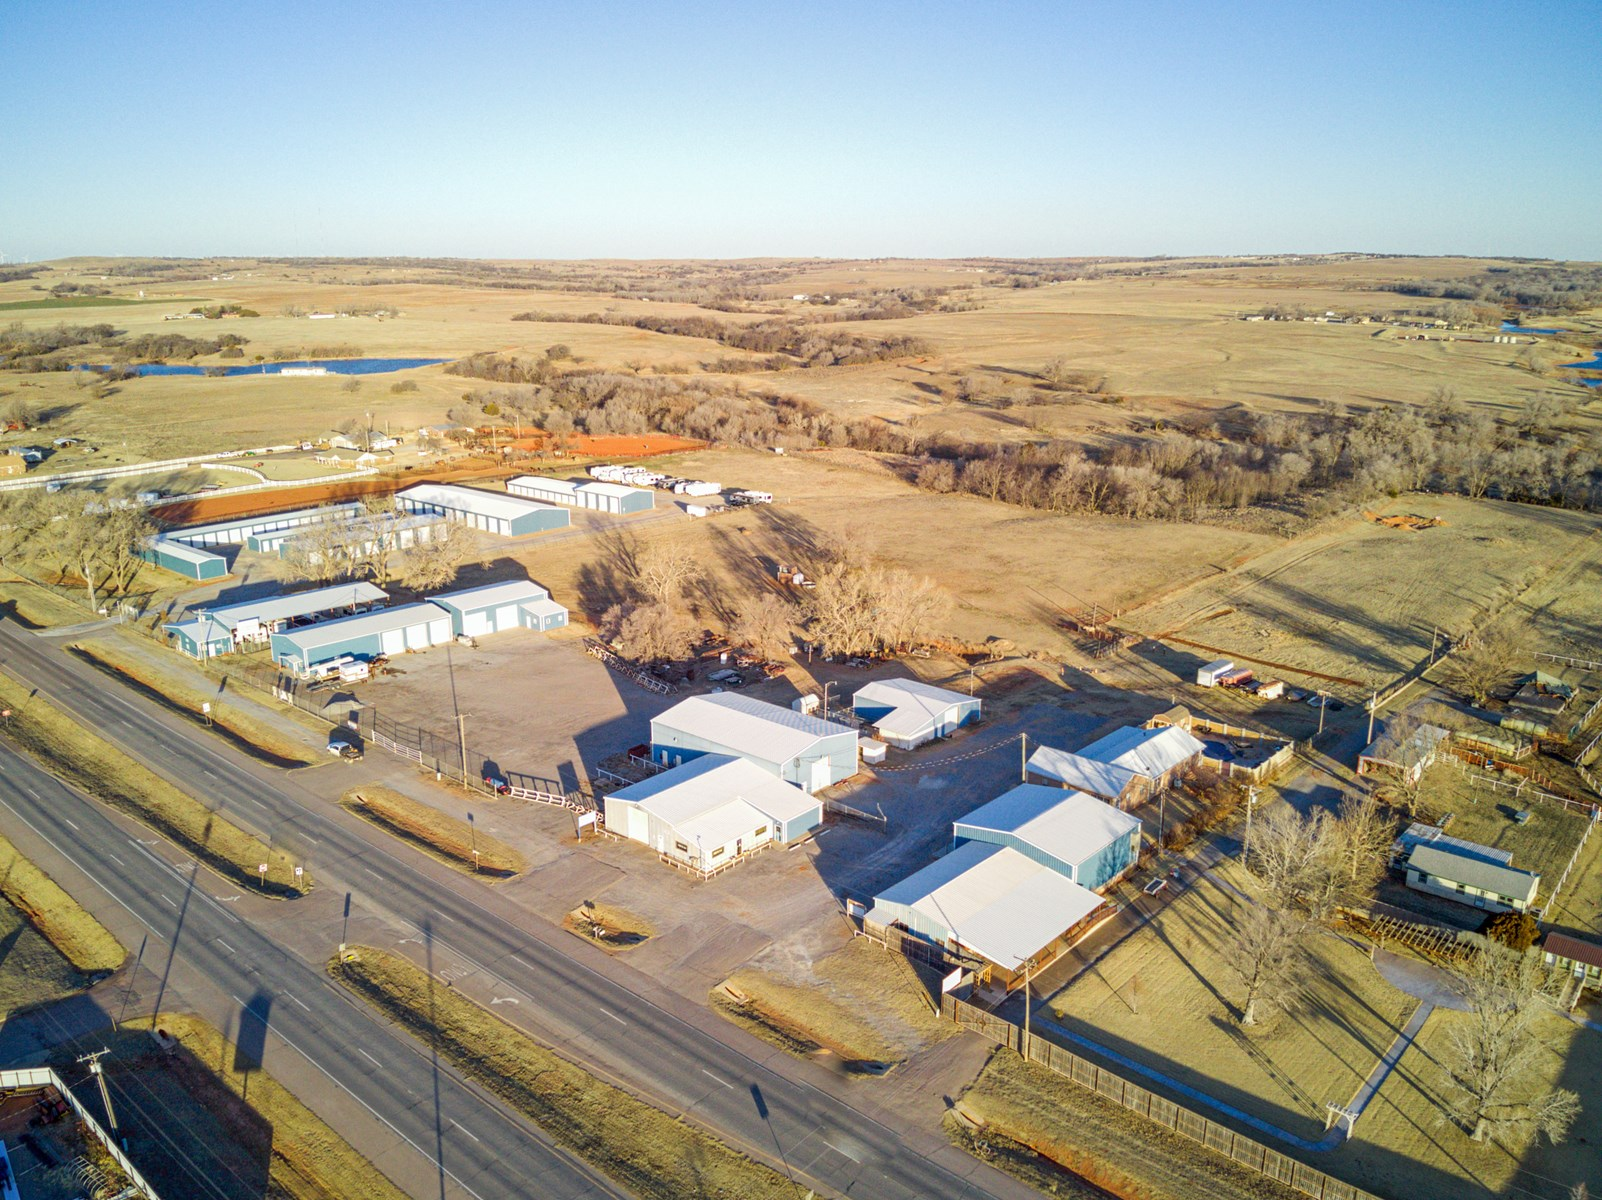 Commercial Buildings and Land For Sale in Beckham County, OK